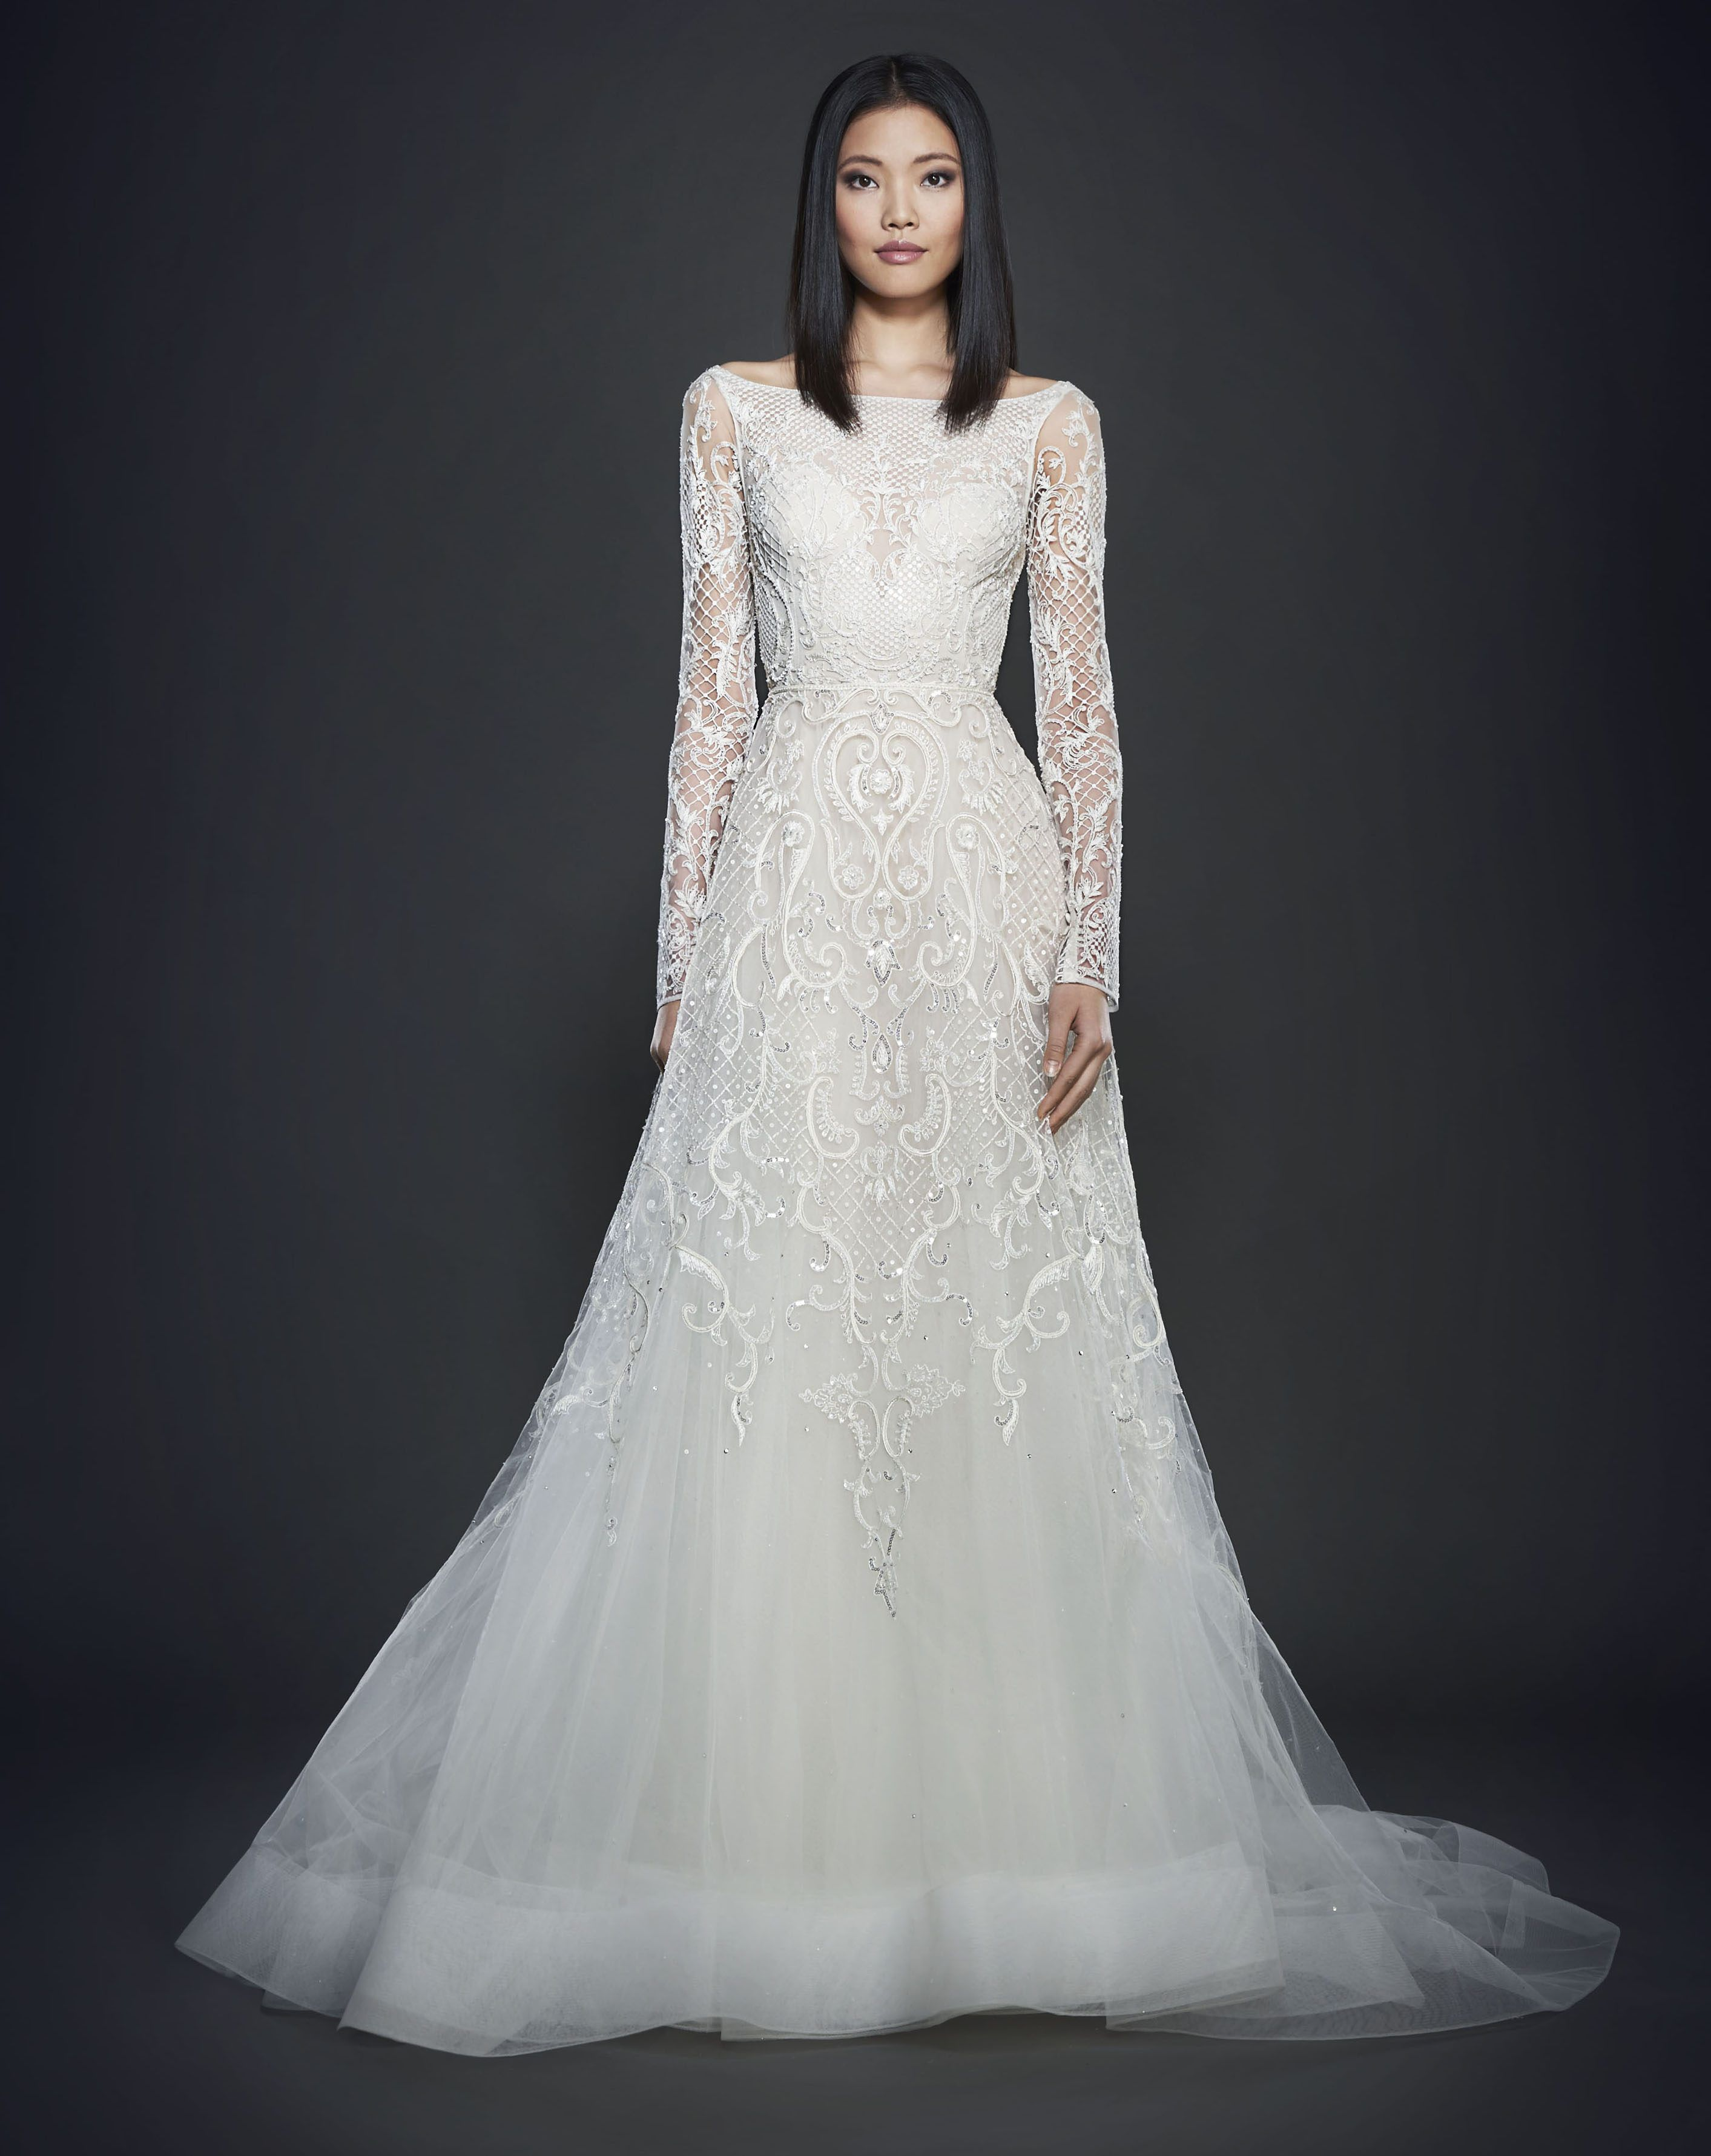 bridal gowns and wedding dresses by jlm couture style 3709